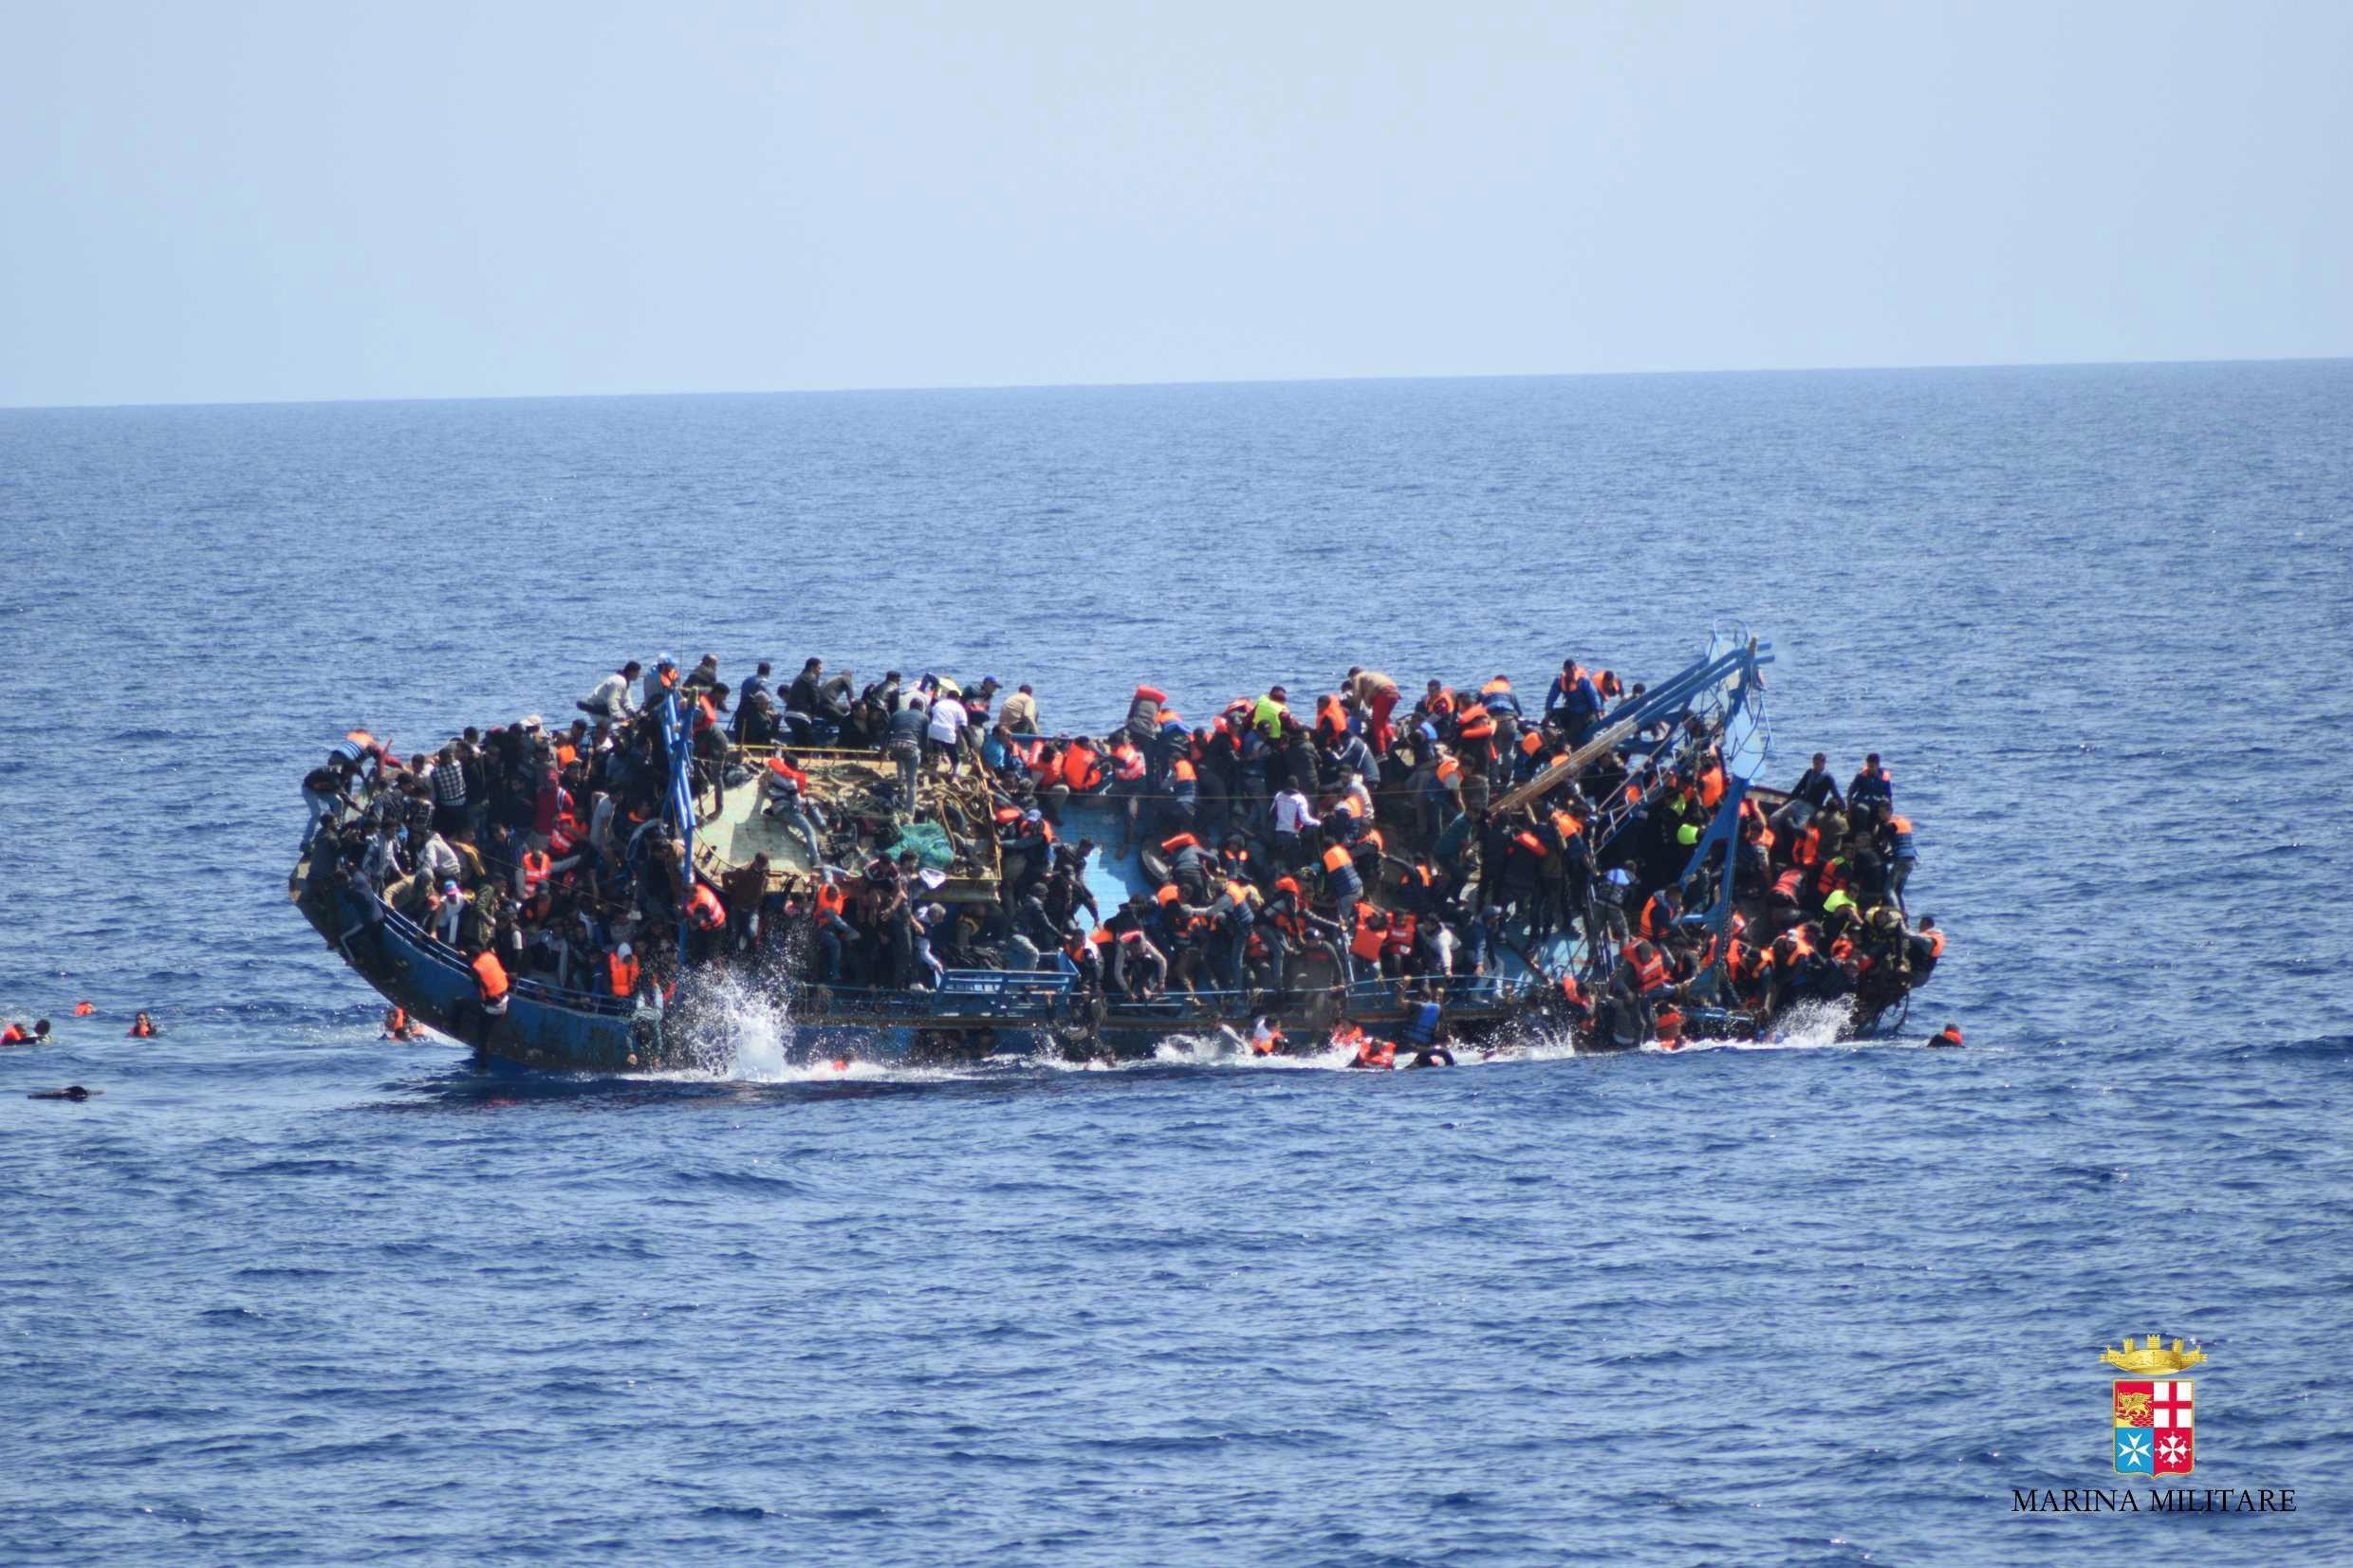 90 migrants feared dead after boat capsizes in the Mediterranean leaving just three survivors as they tried to reach Europe